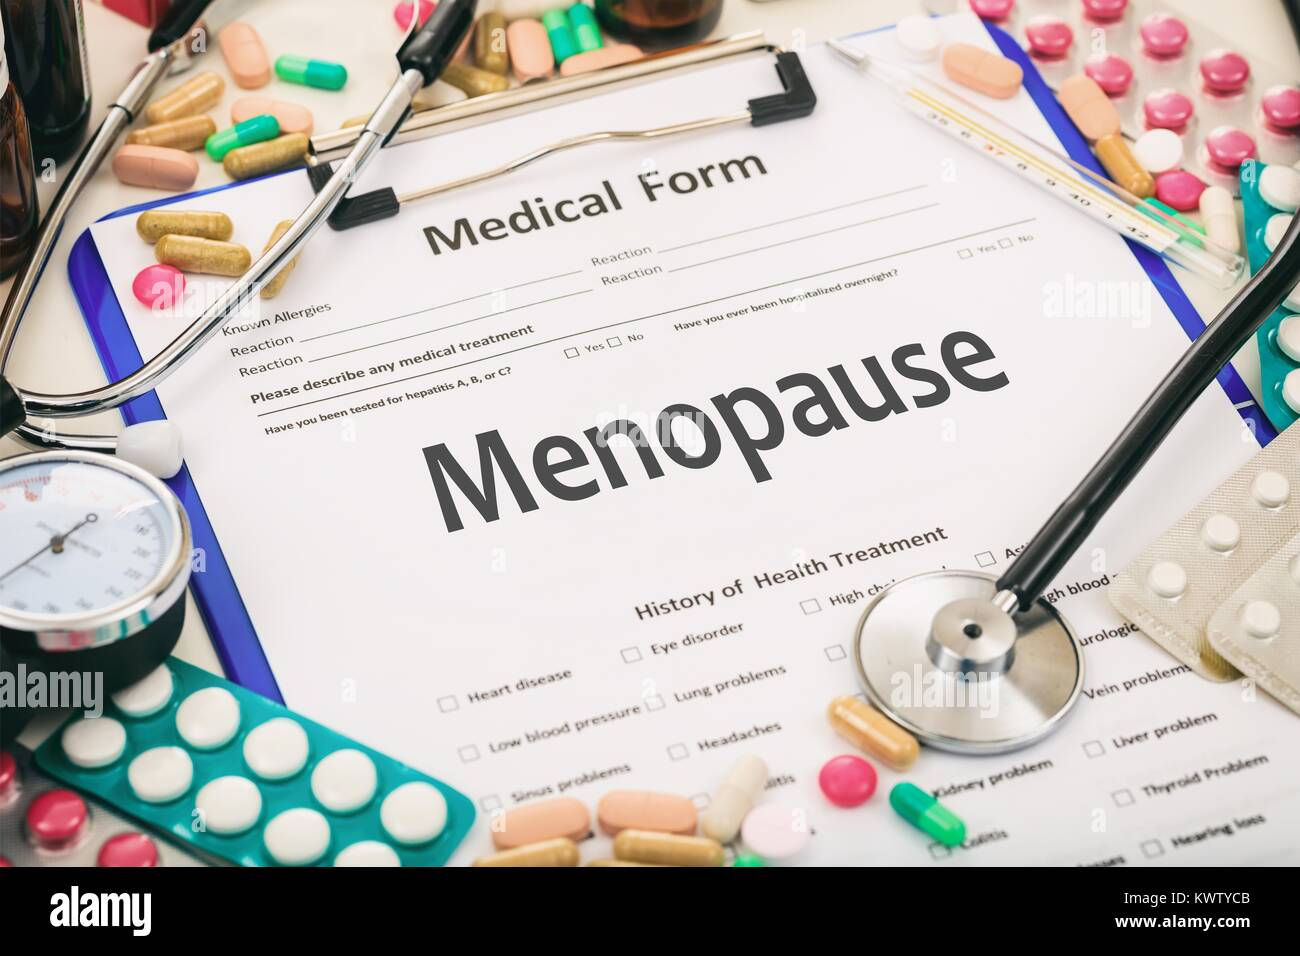 Medical form on a table, diagnosis menopause - Stock Image